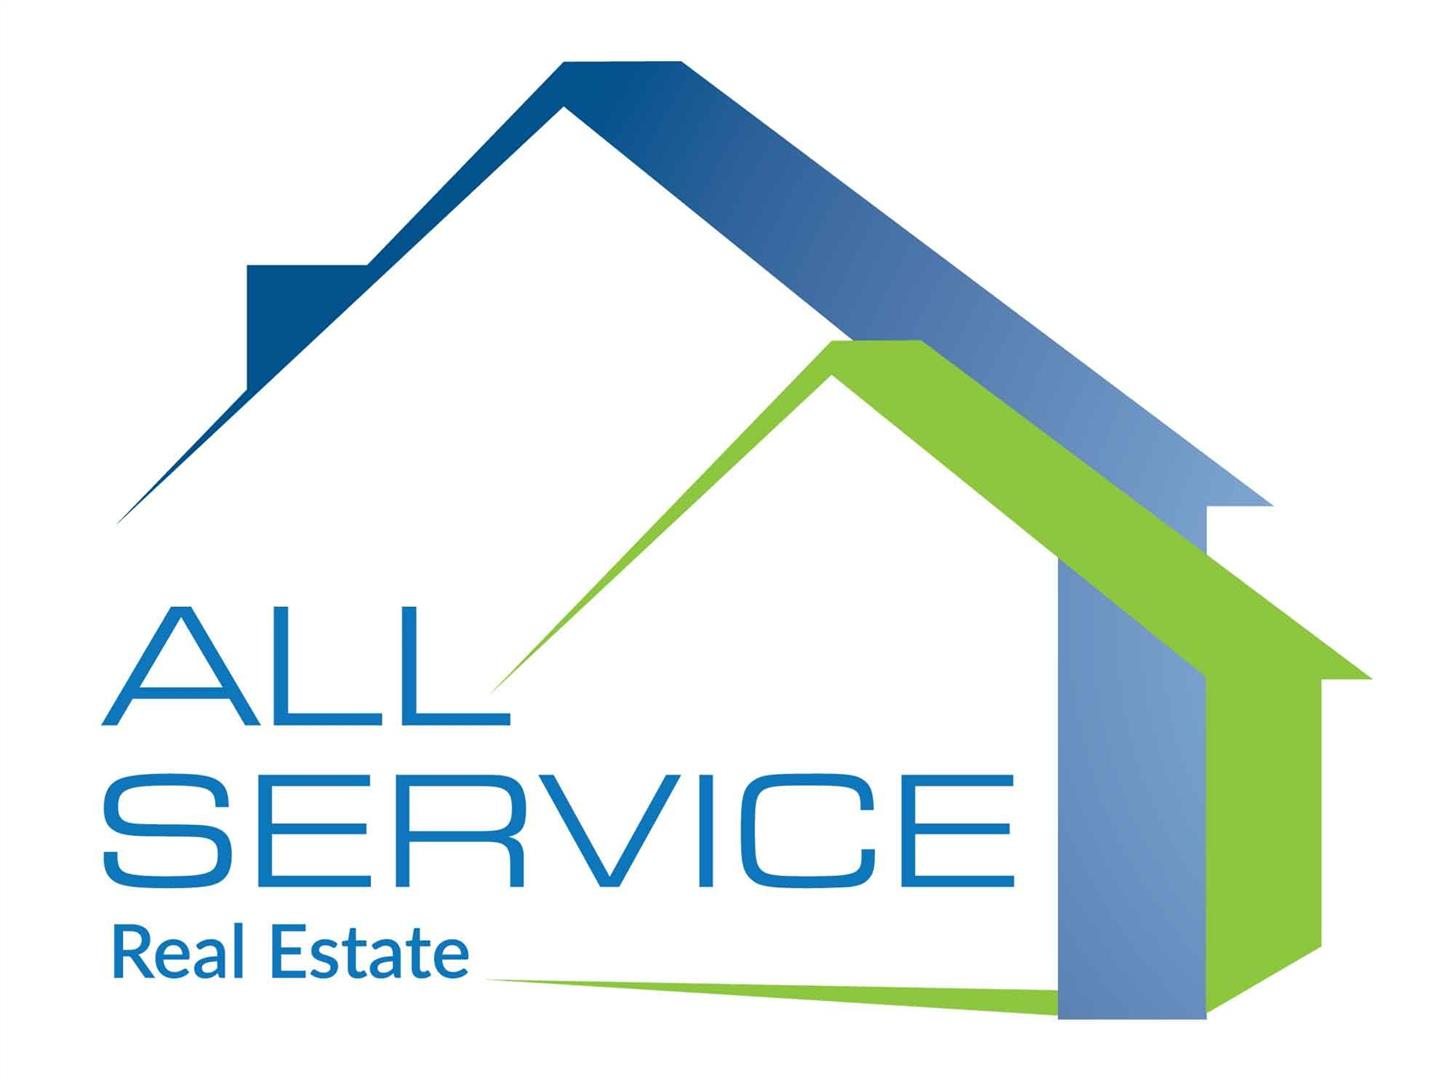 All Service Real Estate